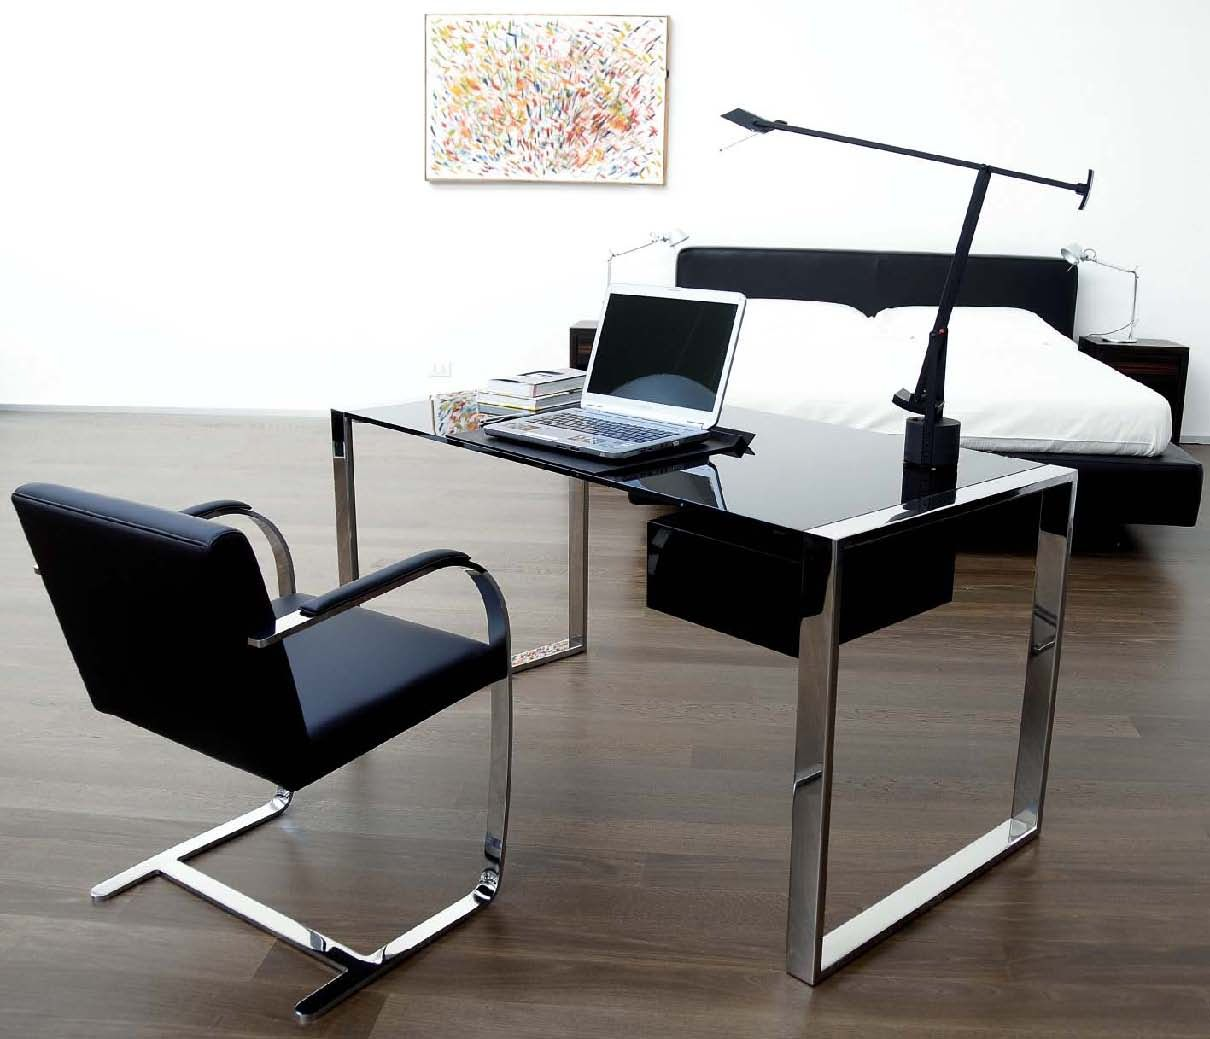 50 Elegant Desk Designs For Home Office With Office Computer Desk Design Freestanding Elegant Chrome Ba Office Desk Designs Computer Desk Design Desk Furniture